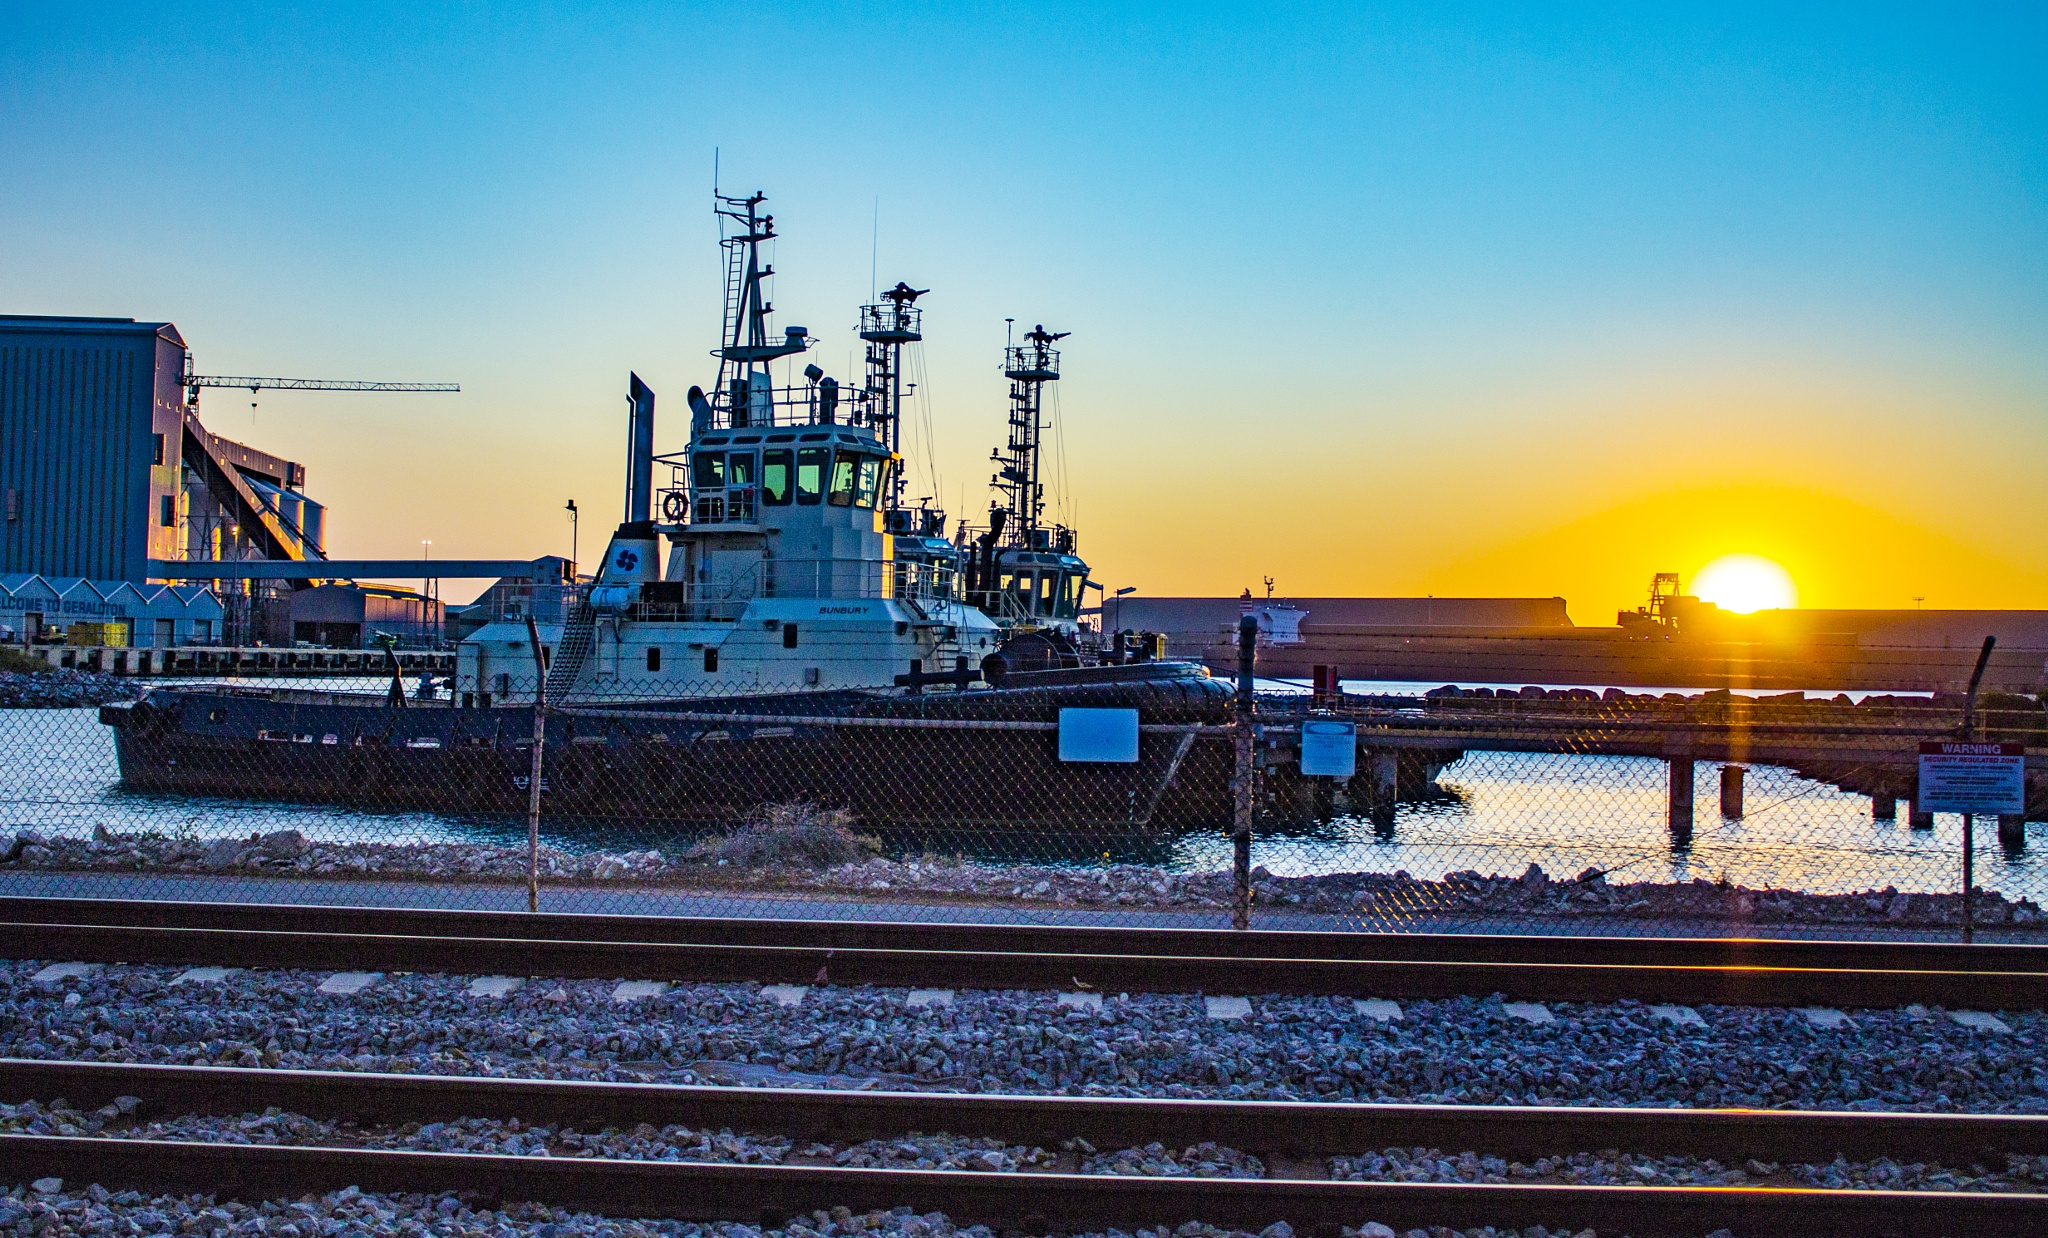 Sunset at the port by Colin Sherman